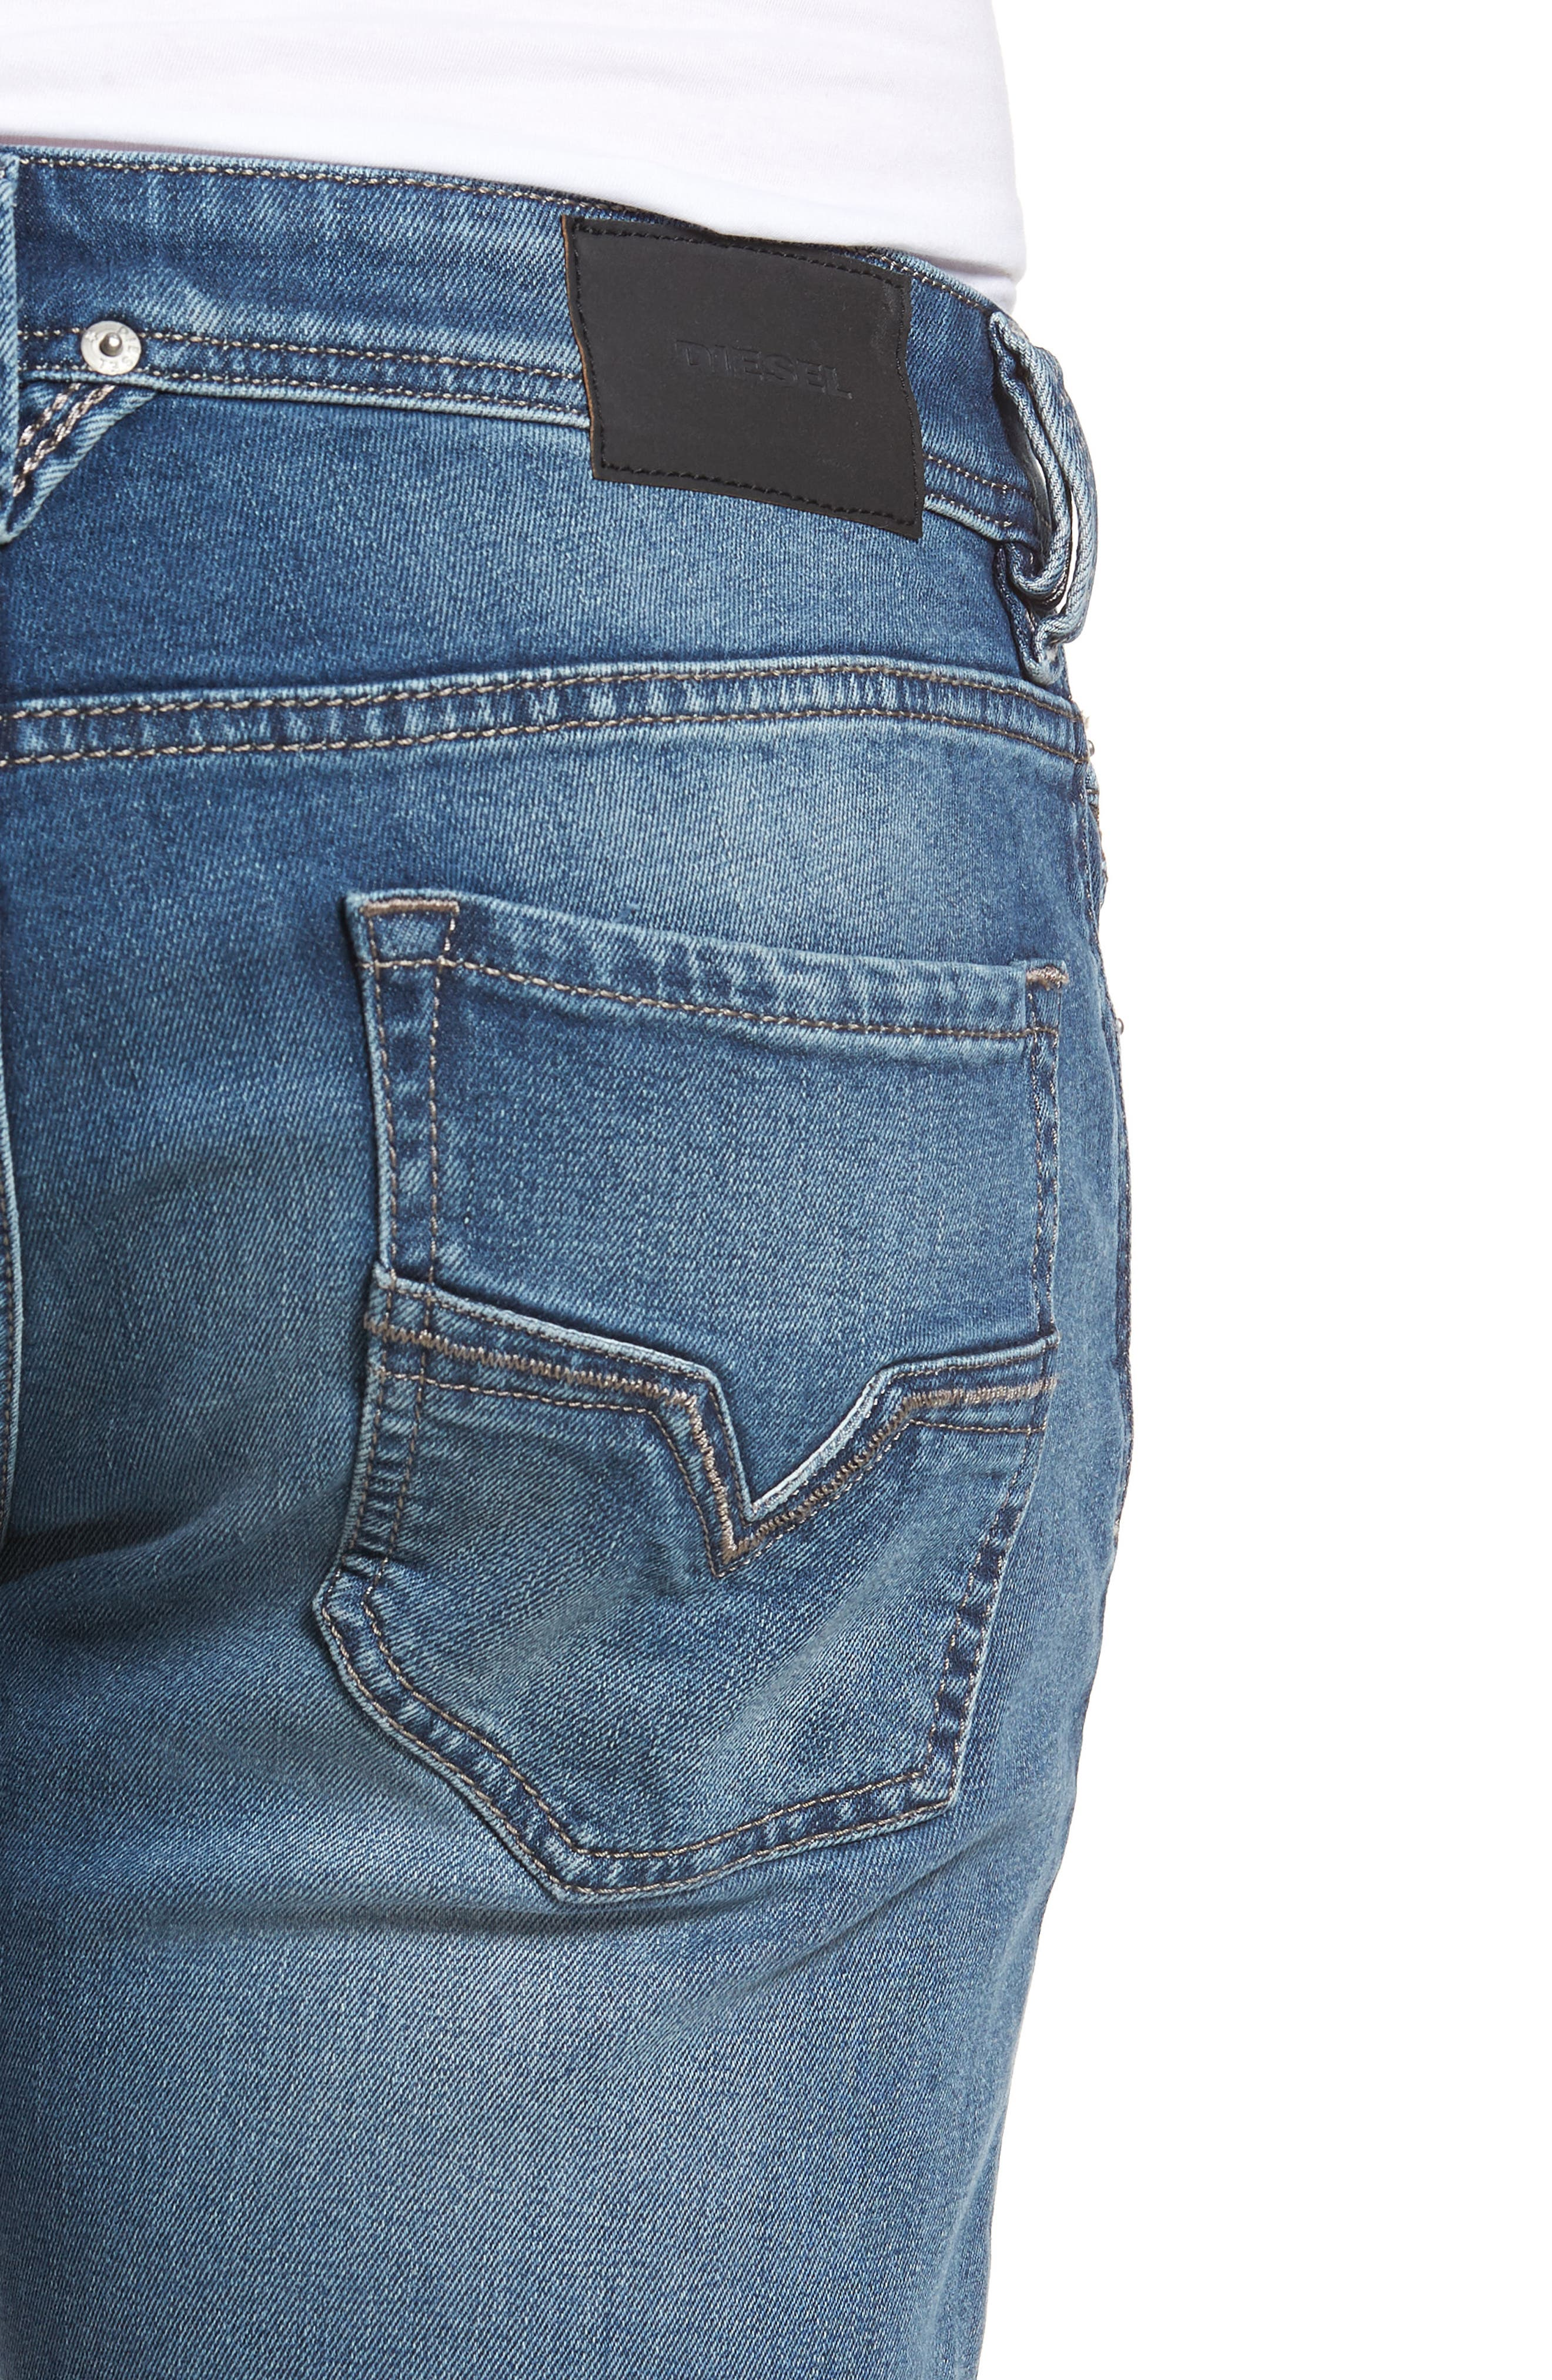 Larkee Relaxed Fit Jeans,                             Alternate thumbnail 4, color,                             900